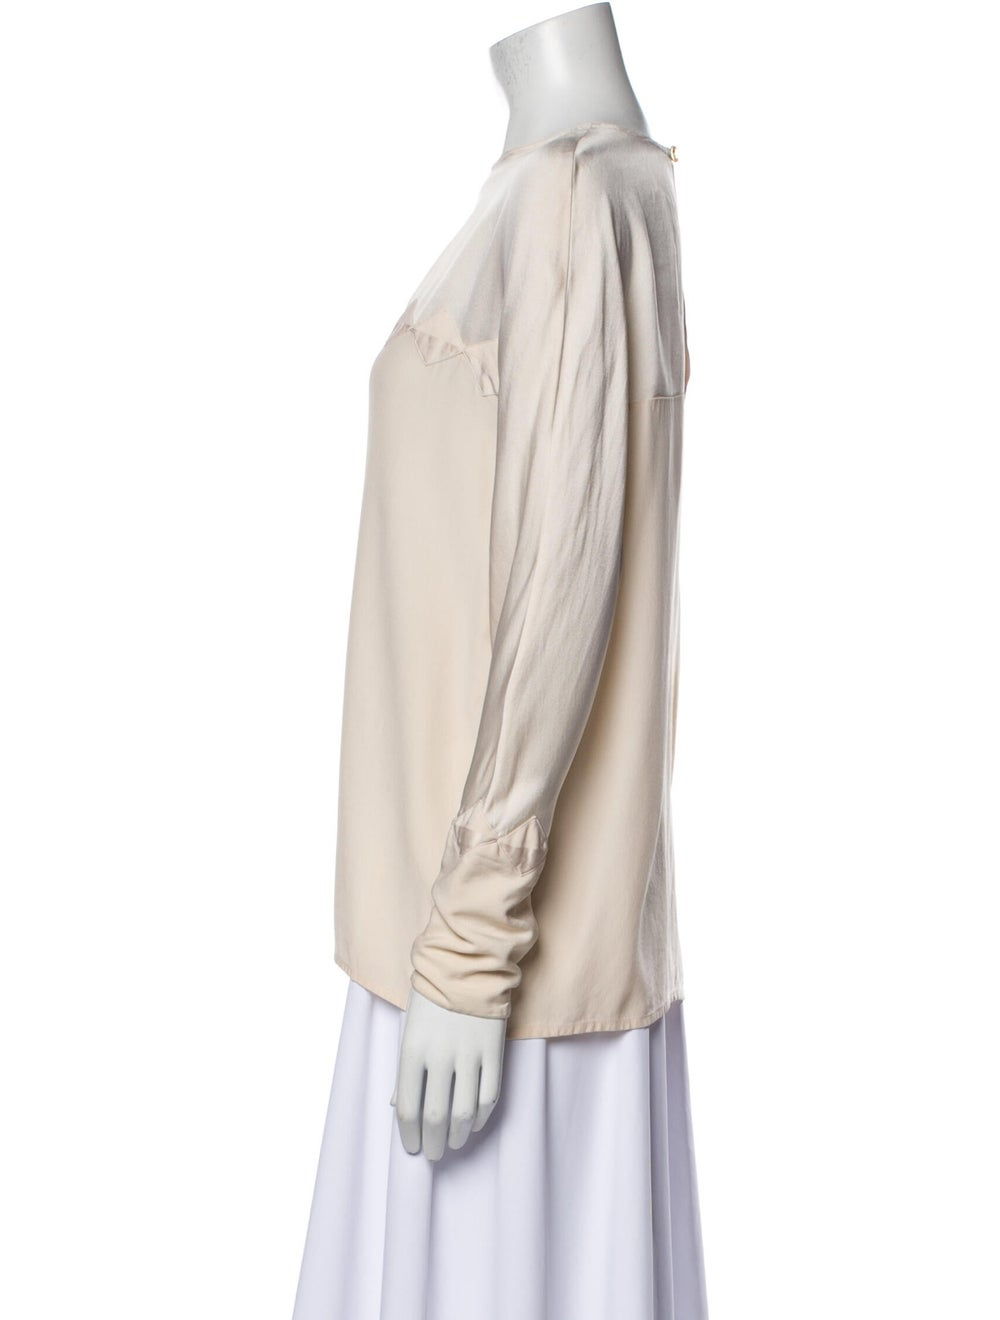 Chanel Vintage Late 1980's - Early 1990's Blouse - image 2